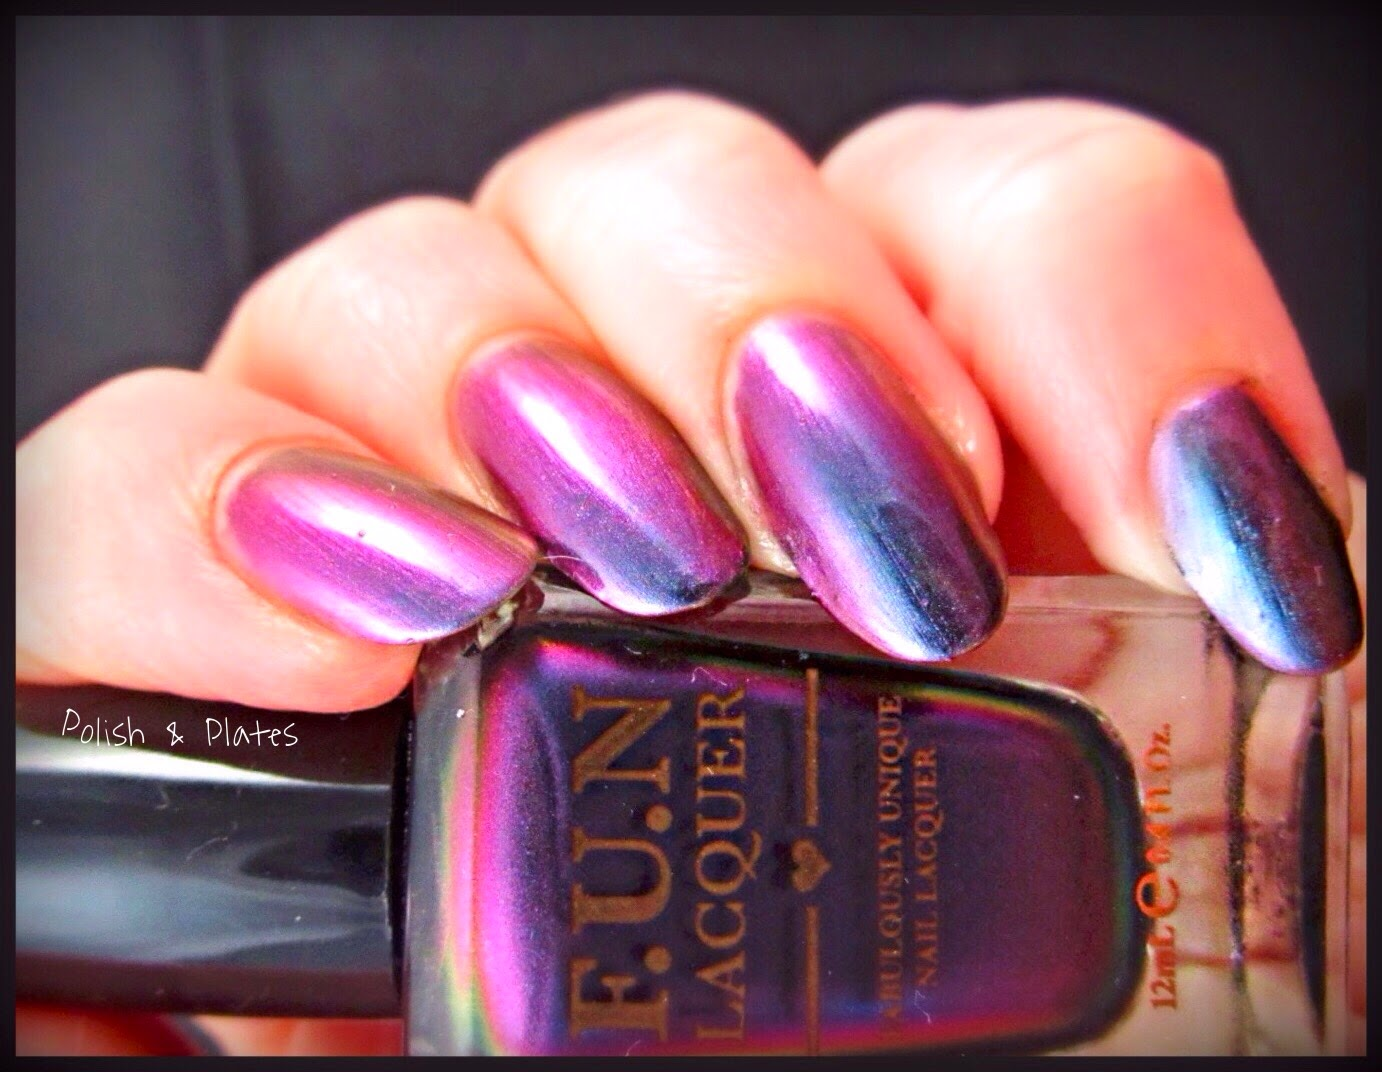 Polish & Plates: F.U.N Lacquer - Love 2015 Collection - Partial Review